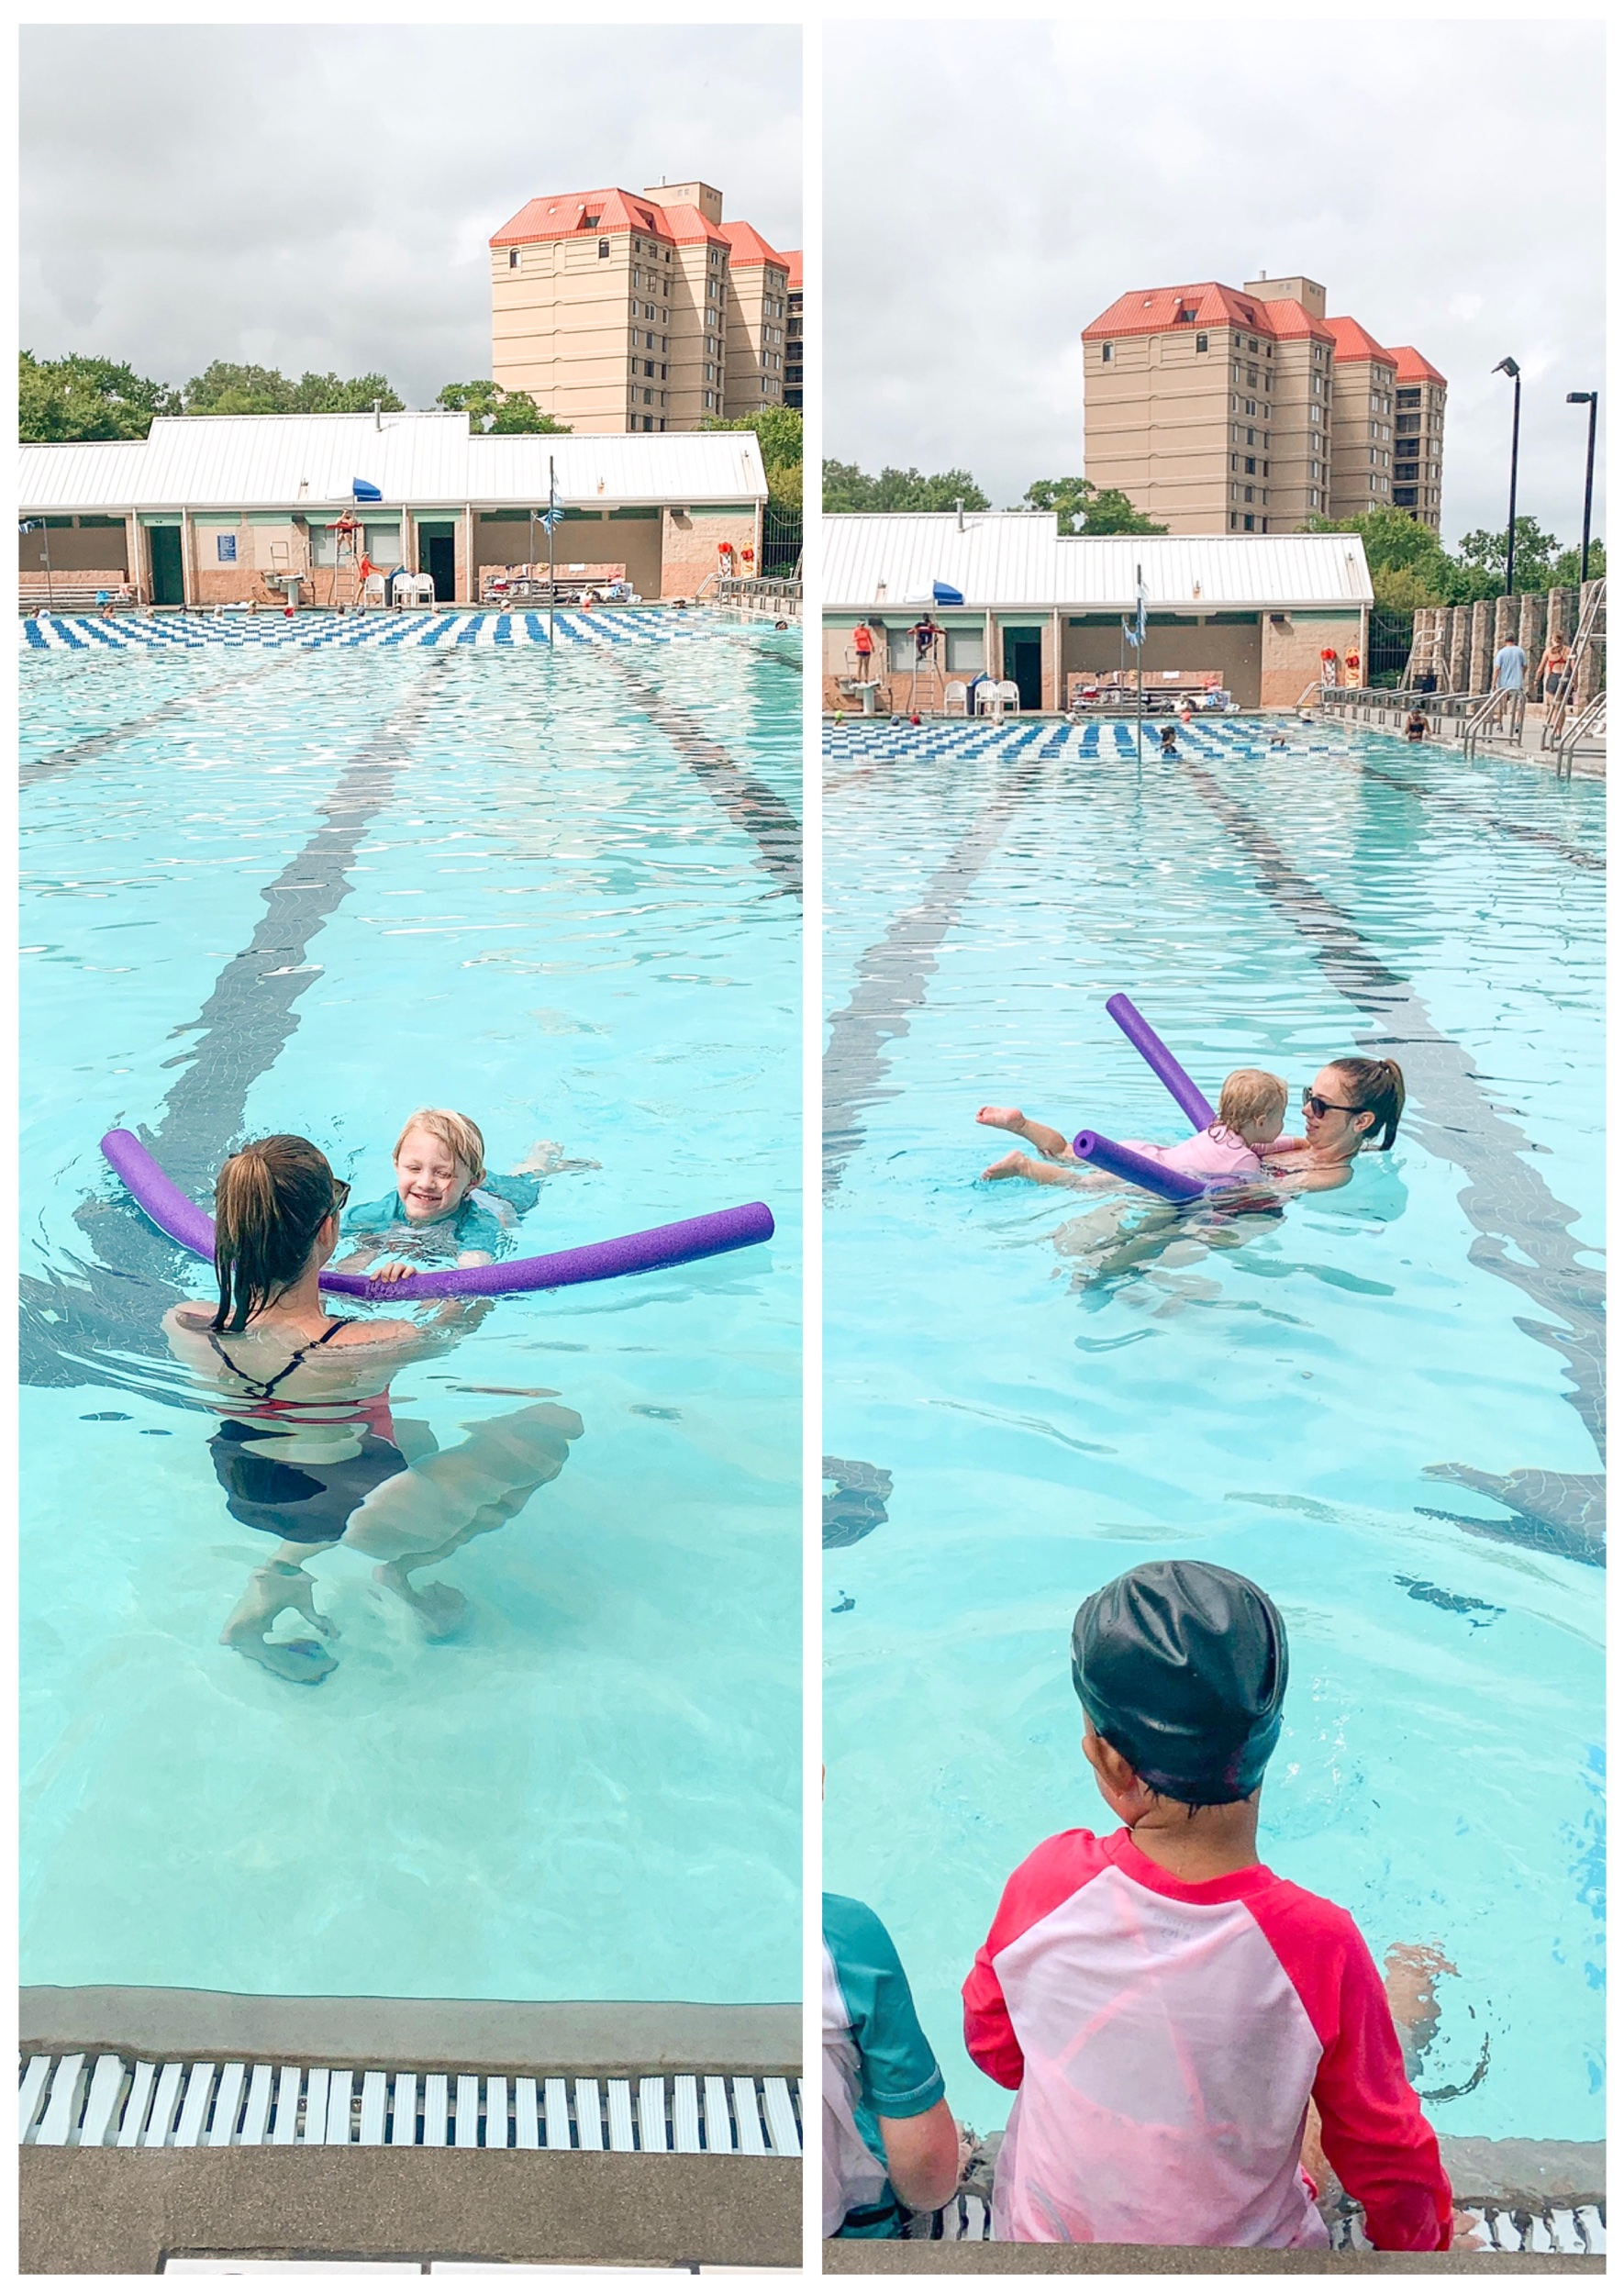 The kids are practicing kicking while holding on to a noodle. They also used a kickboard to do the same thing.